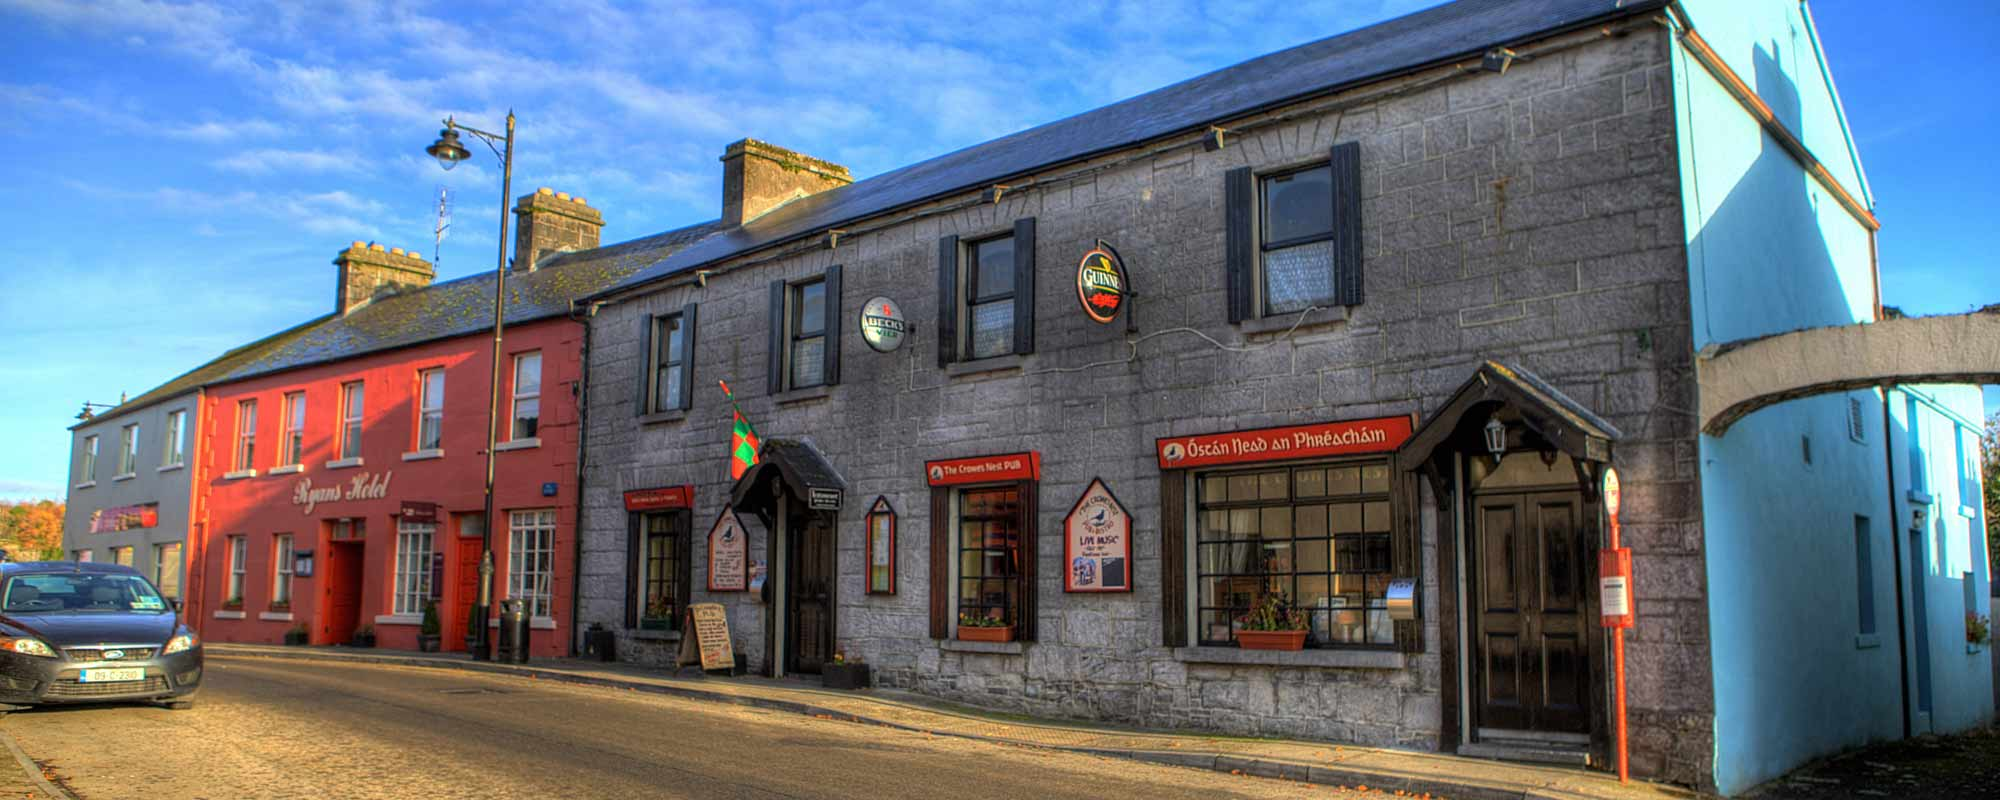 Bed And Breakfast Cong Ireland